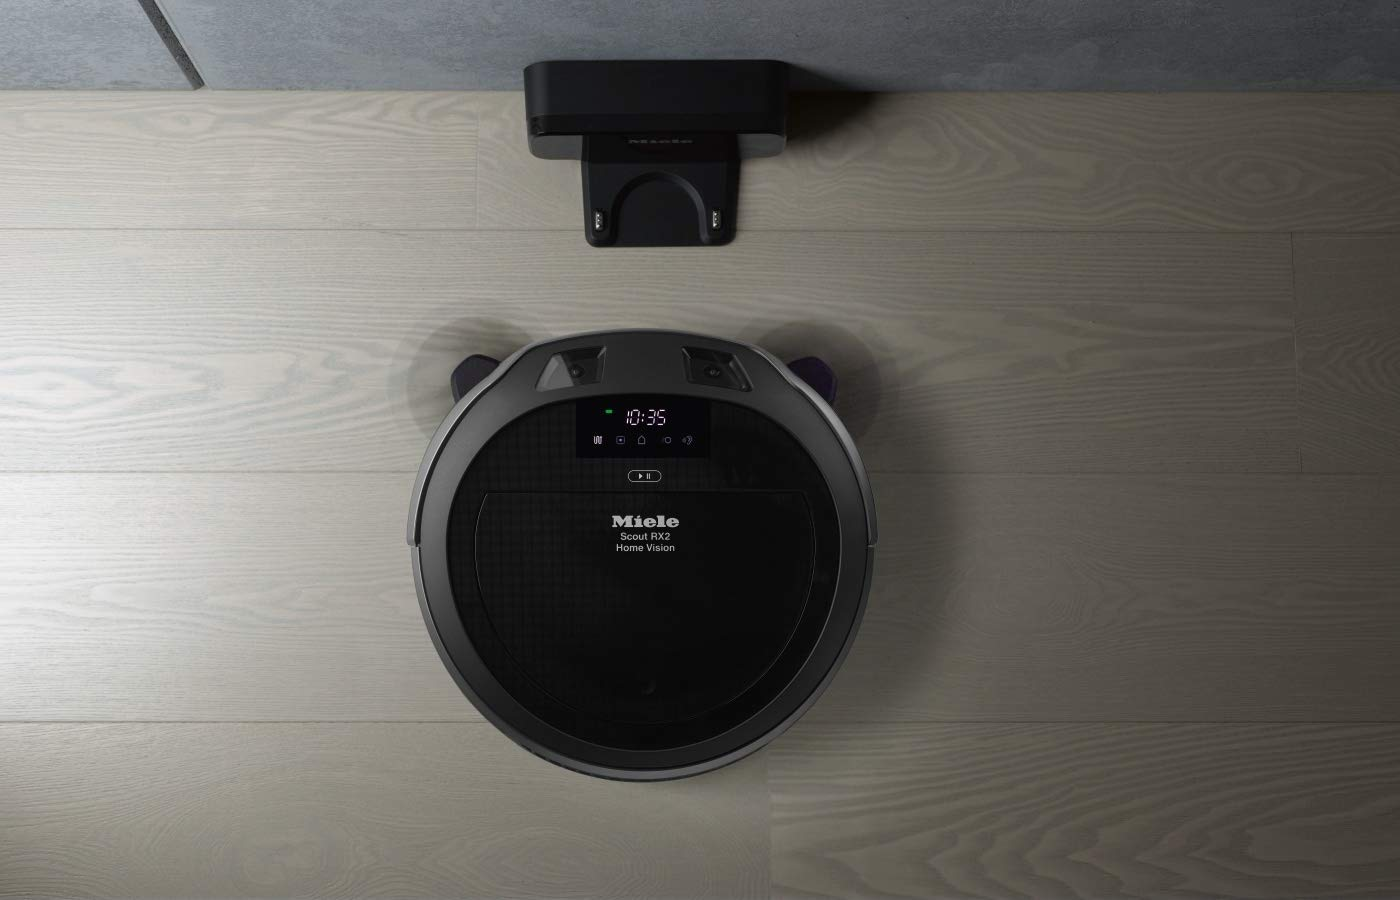 Miele Scout RX2 Home Vision (Modell 2018)